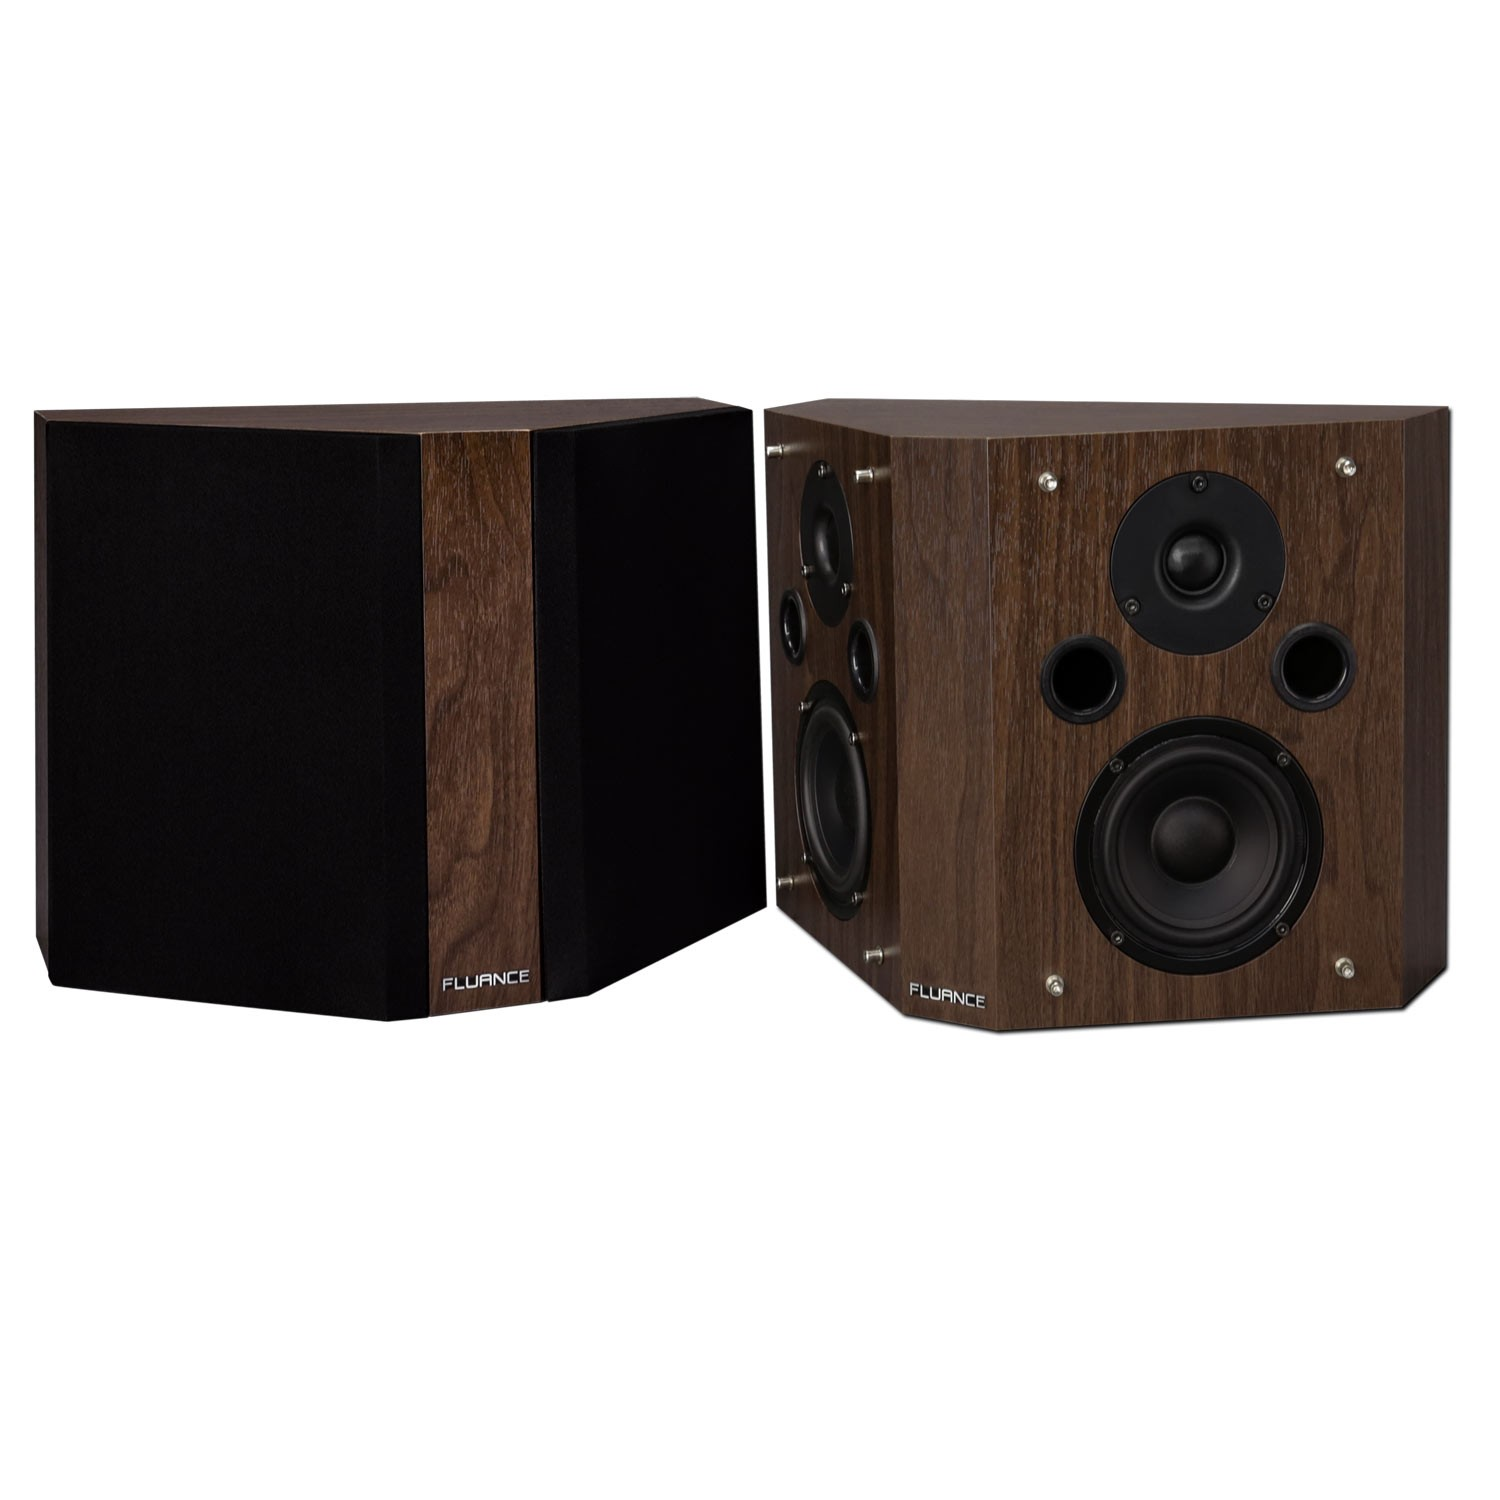 SXBP High Definition Bipolar Surround Sound Speakers